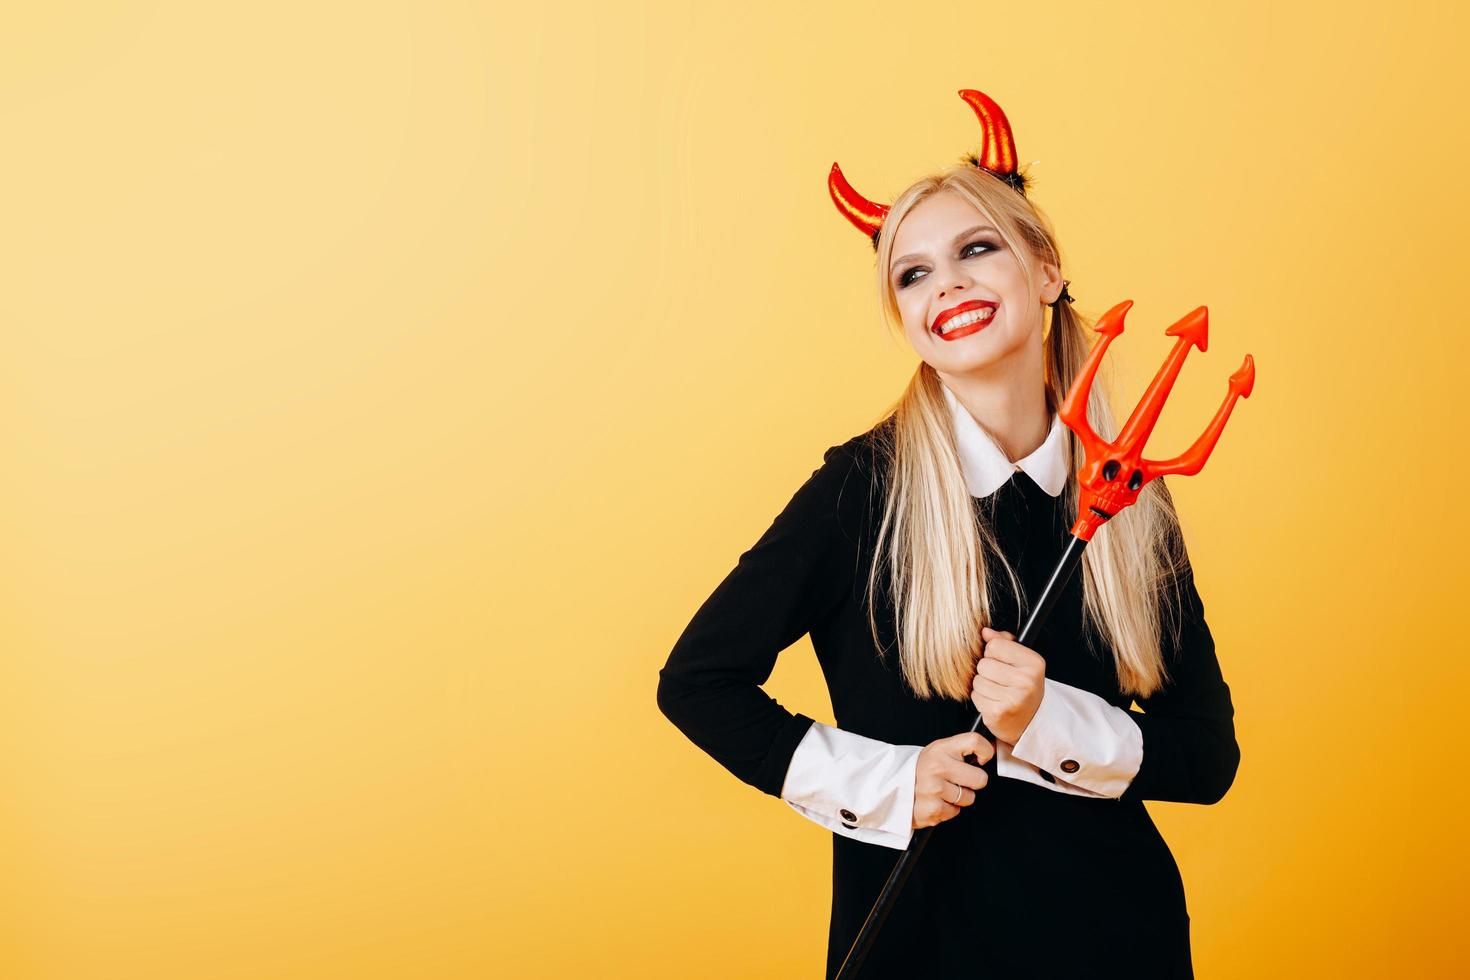 Happy emotion of devil woman standing against a yellow background . photo